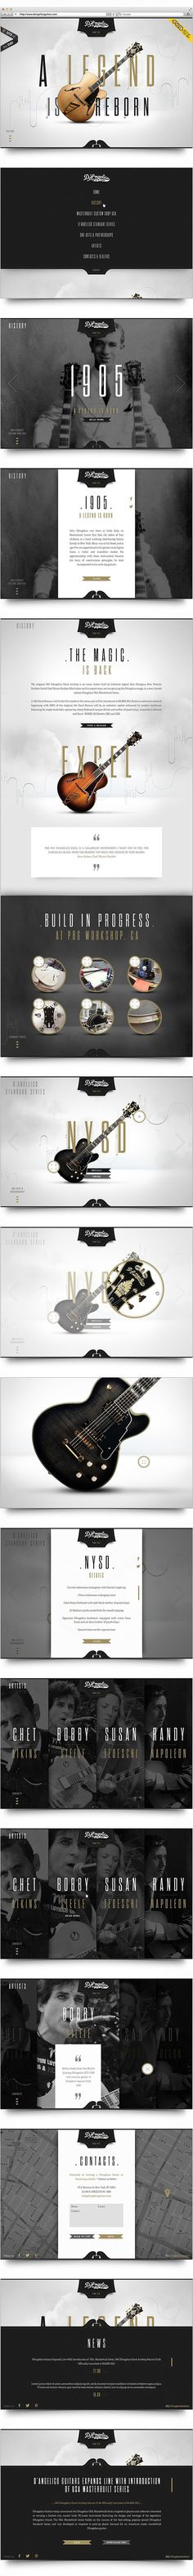 D\'Angelico Guitars on Behance